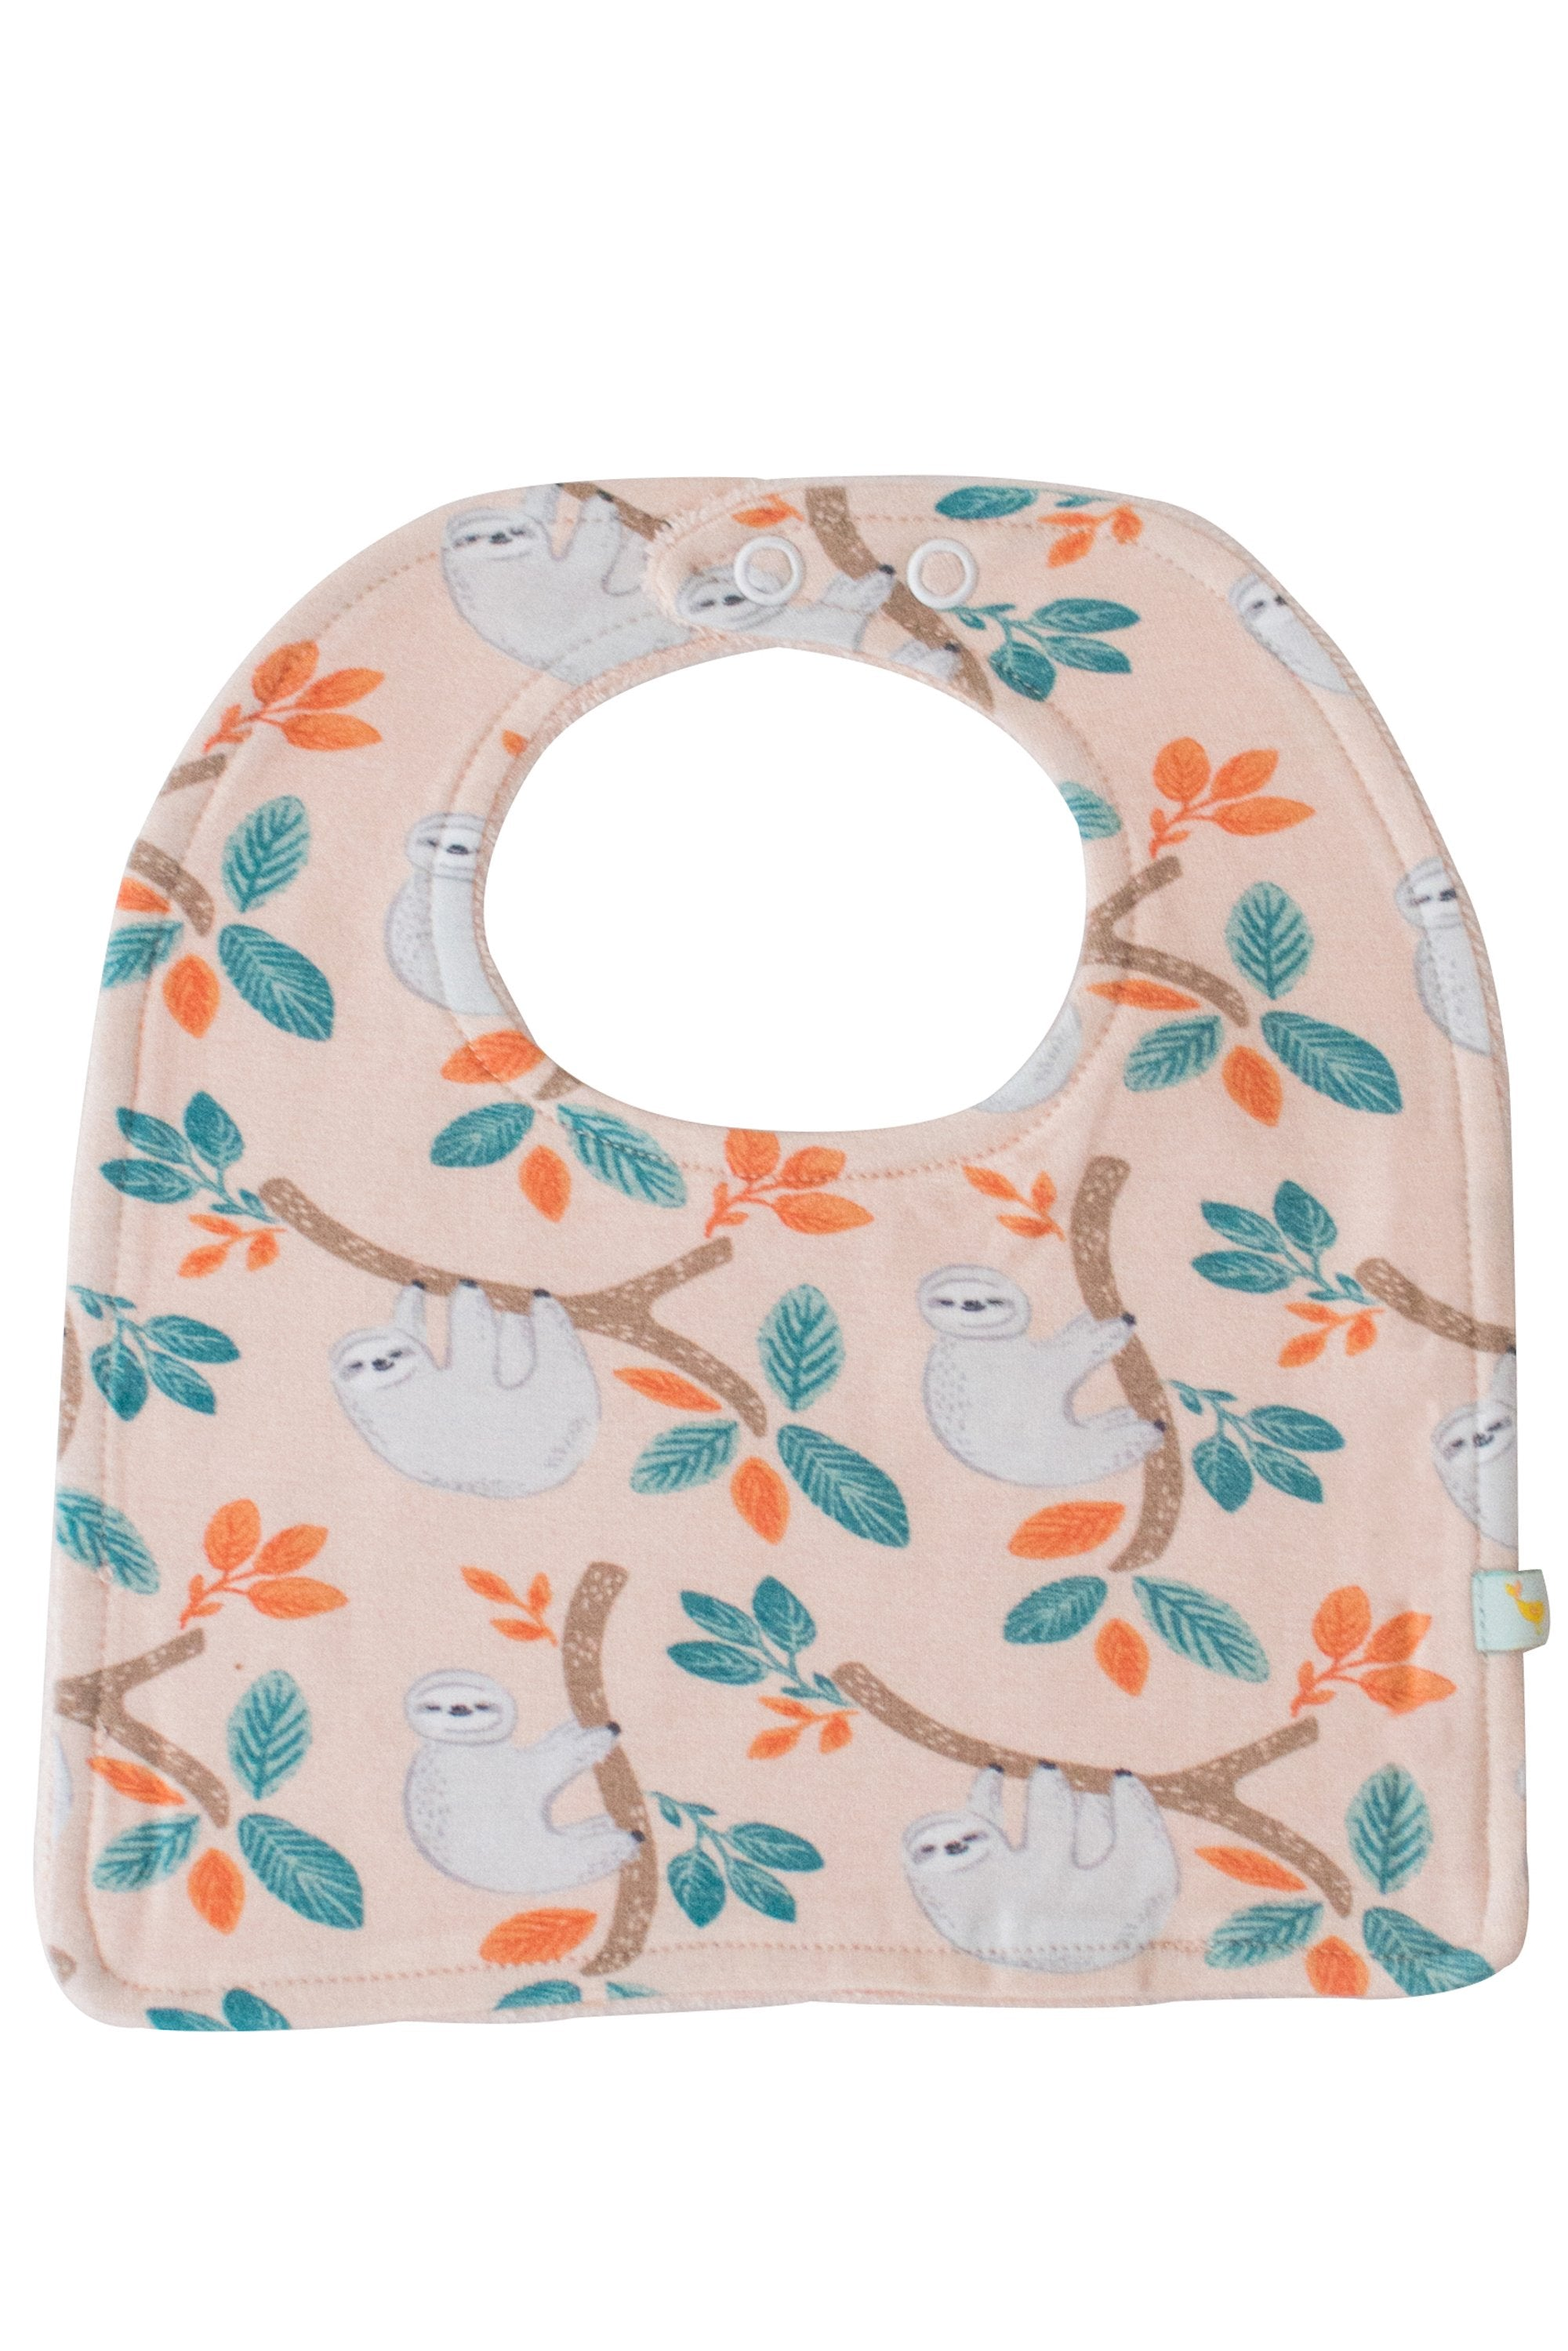 Blush Sloth Bib